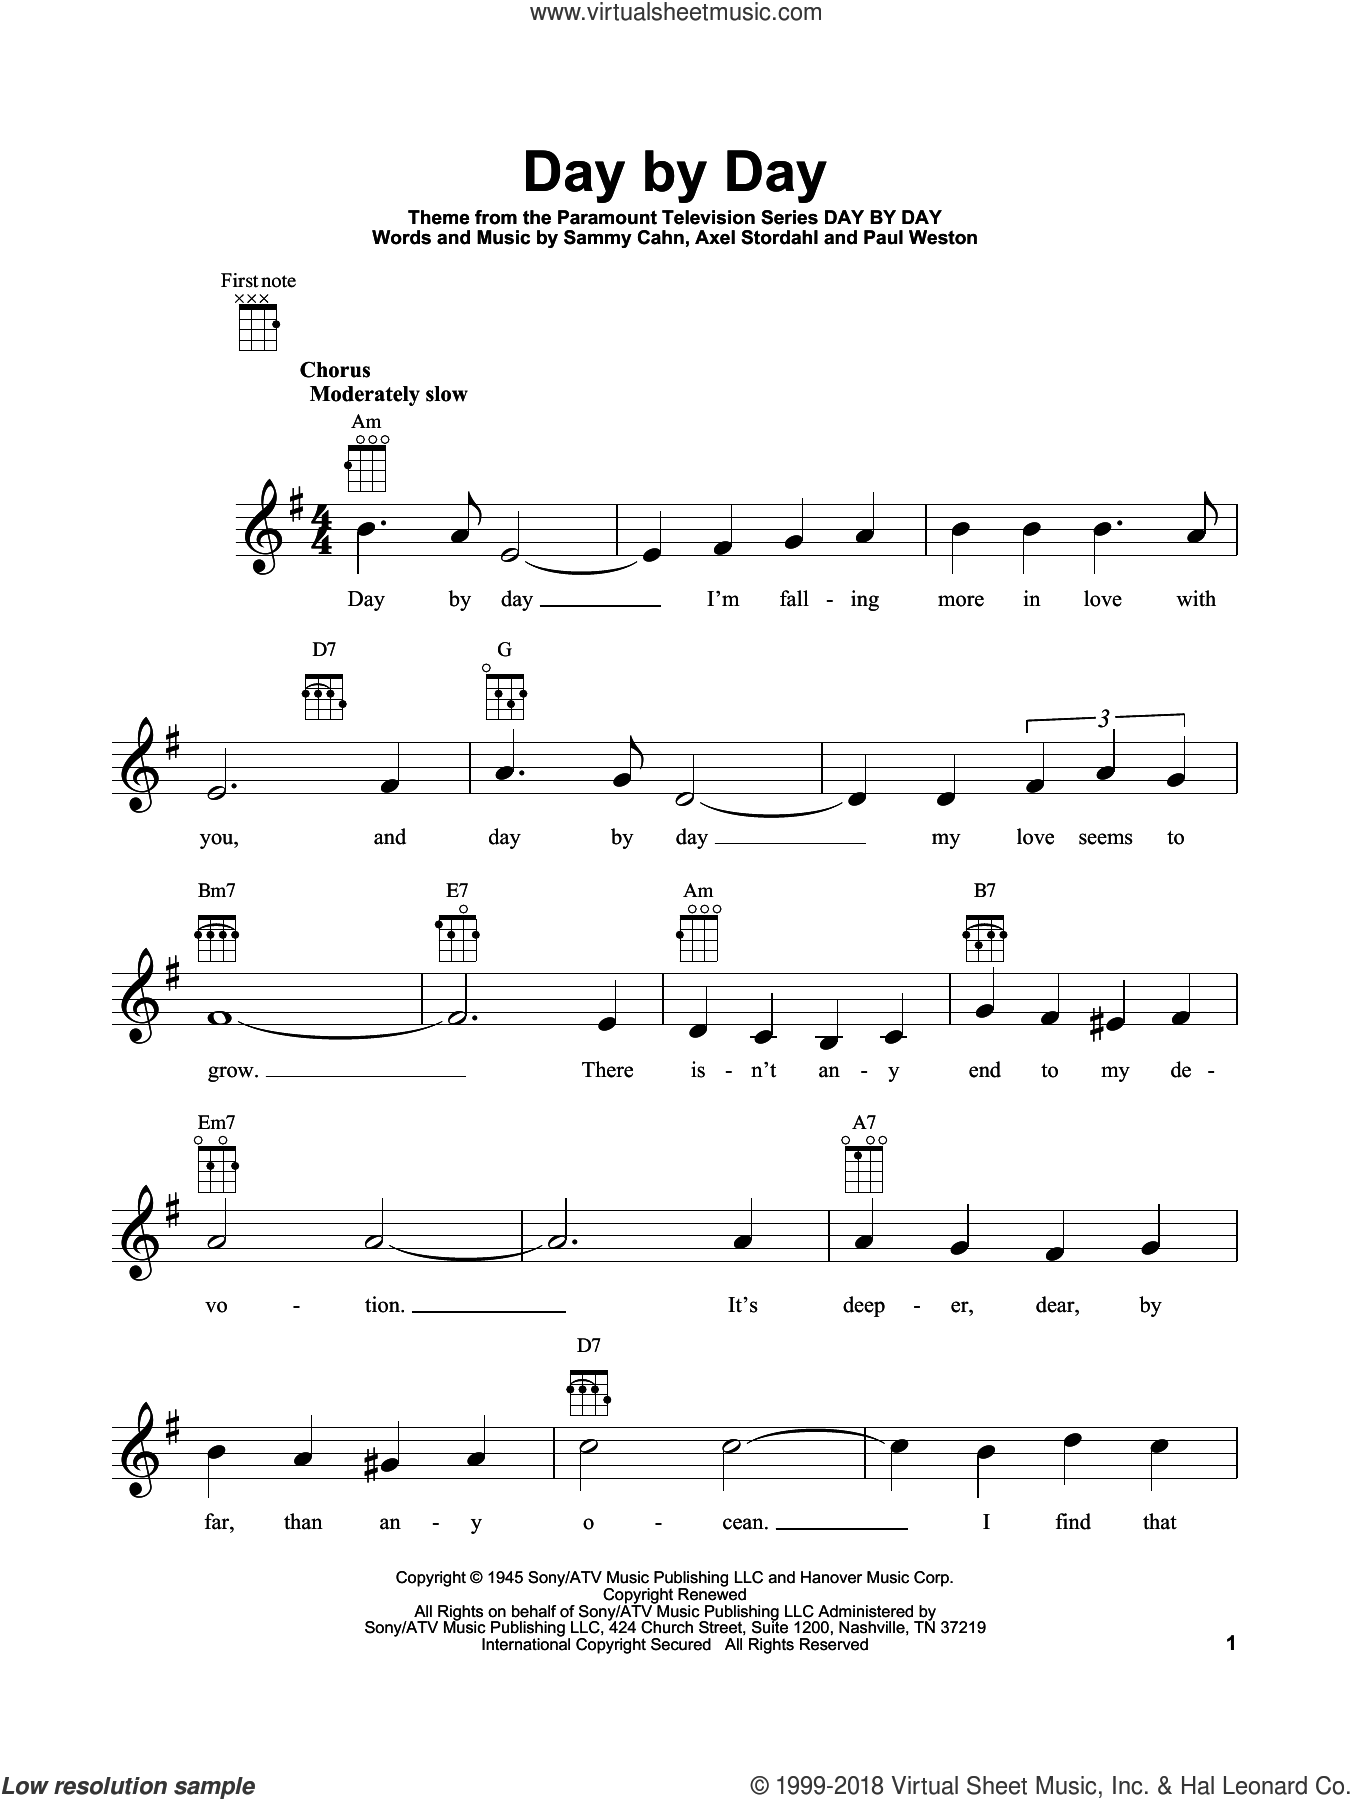 Day By Day sheet music for ukulele by Sammy Cahn, Axel Stordahl and Paul Weston, intermediate skill level